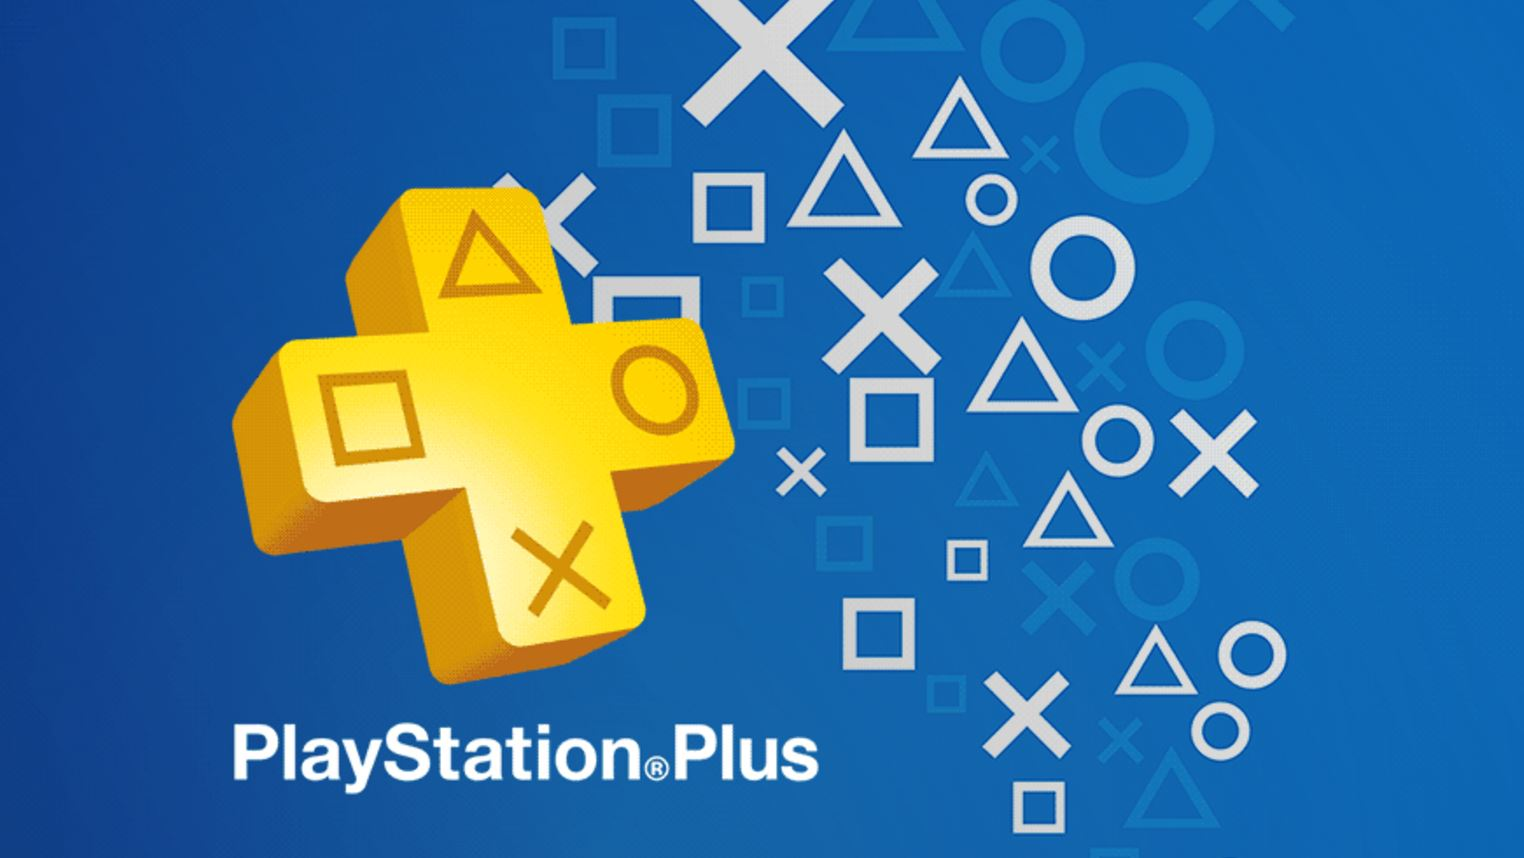 PlayStation Plus deal prices have dropped already for Black Friday